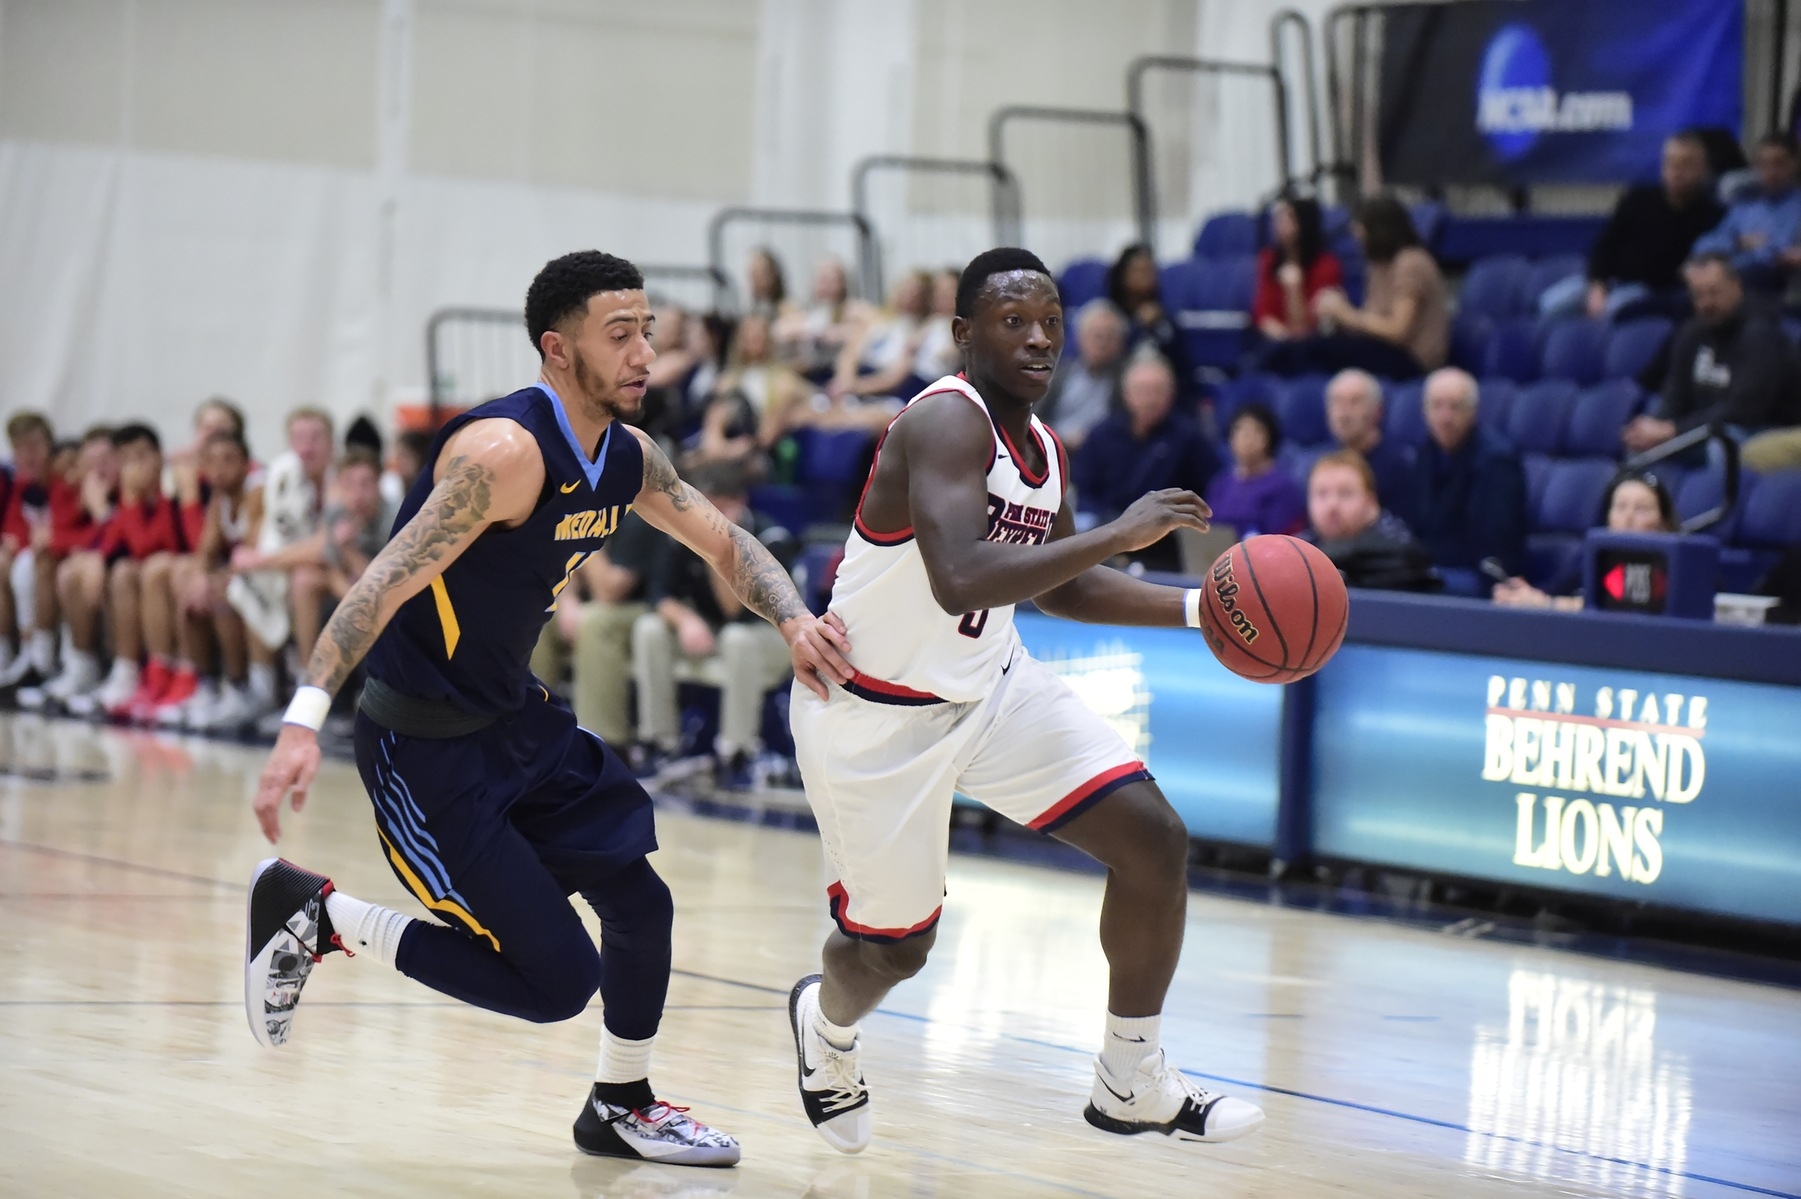 Men's Basketball Earns Fifth Straight Win